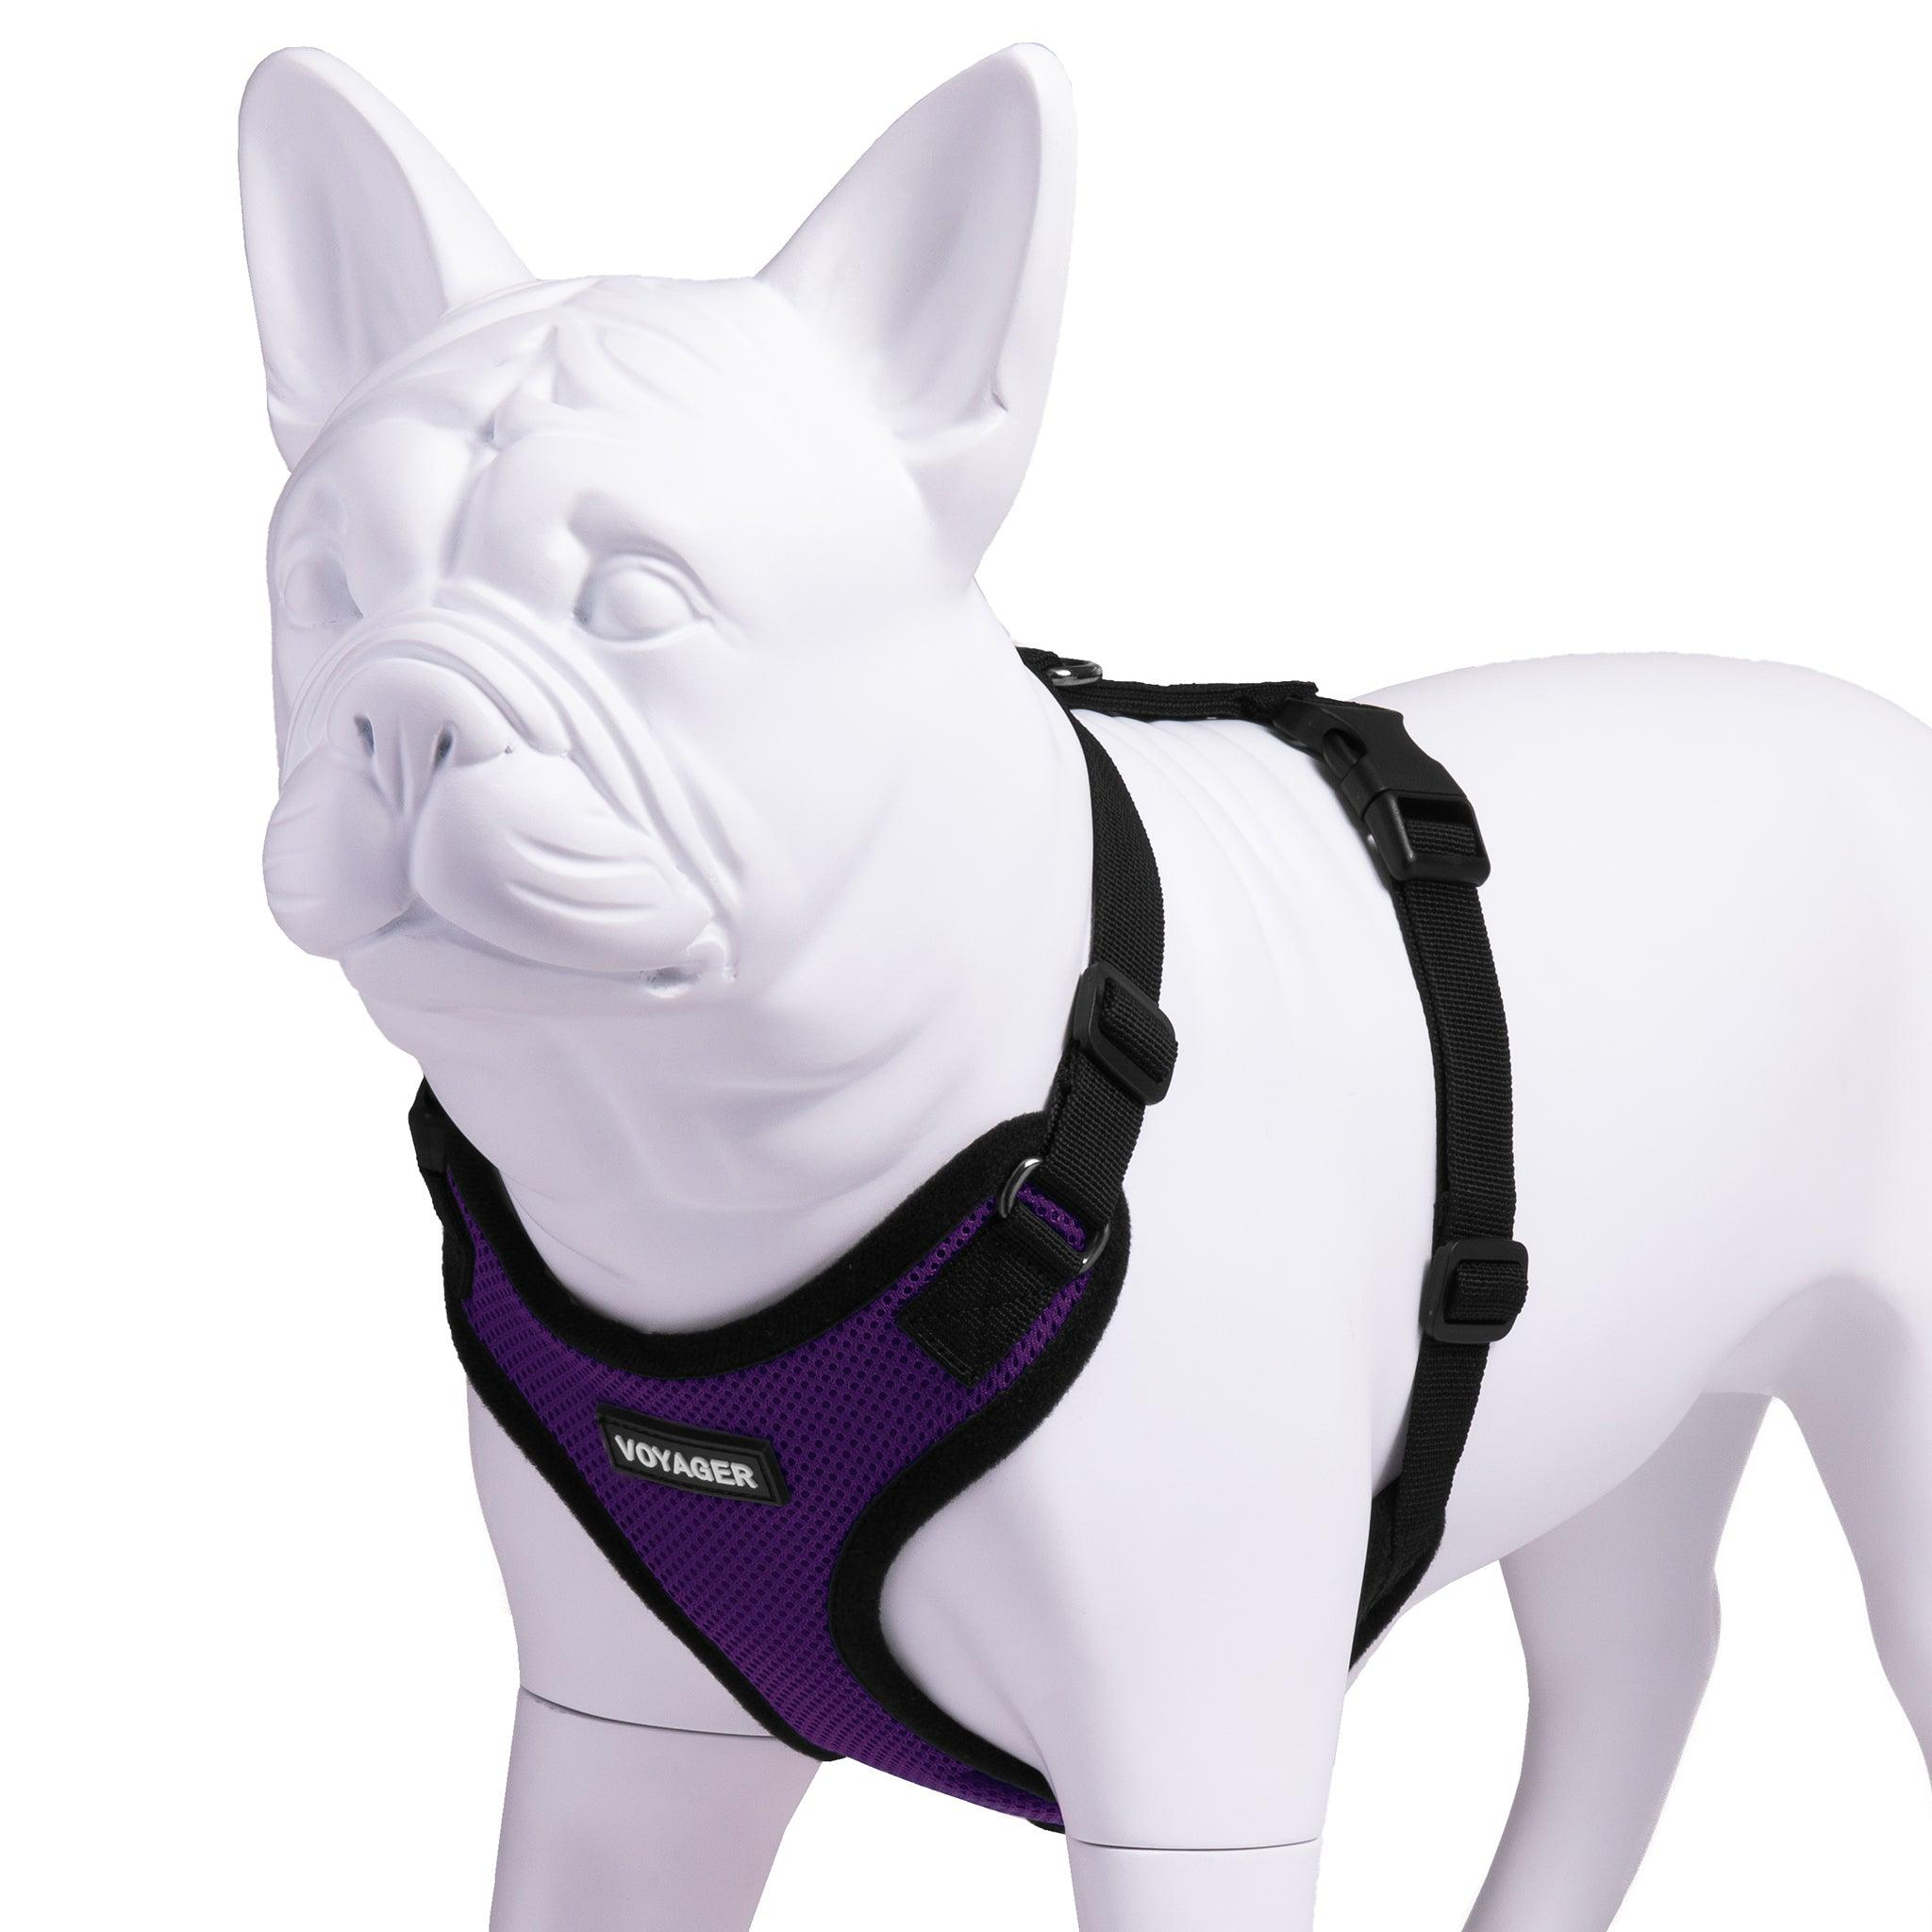 VOYAGER Step-In Lock Dog Harness in Purple with Black Trim and Webbing - Expanded